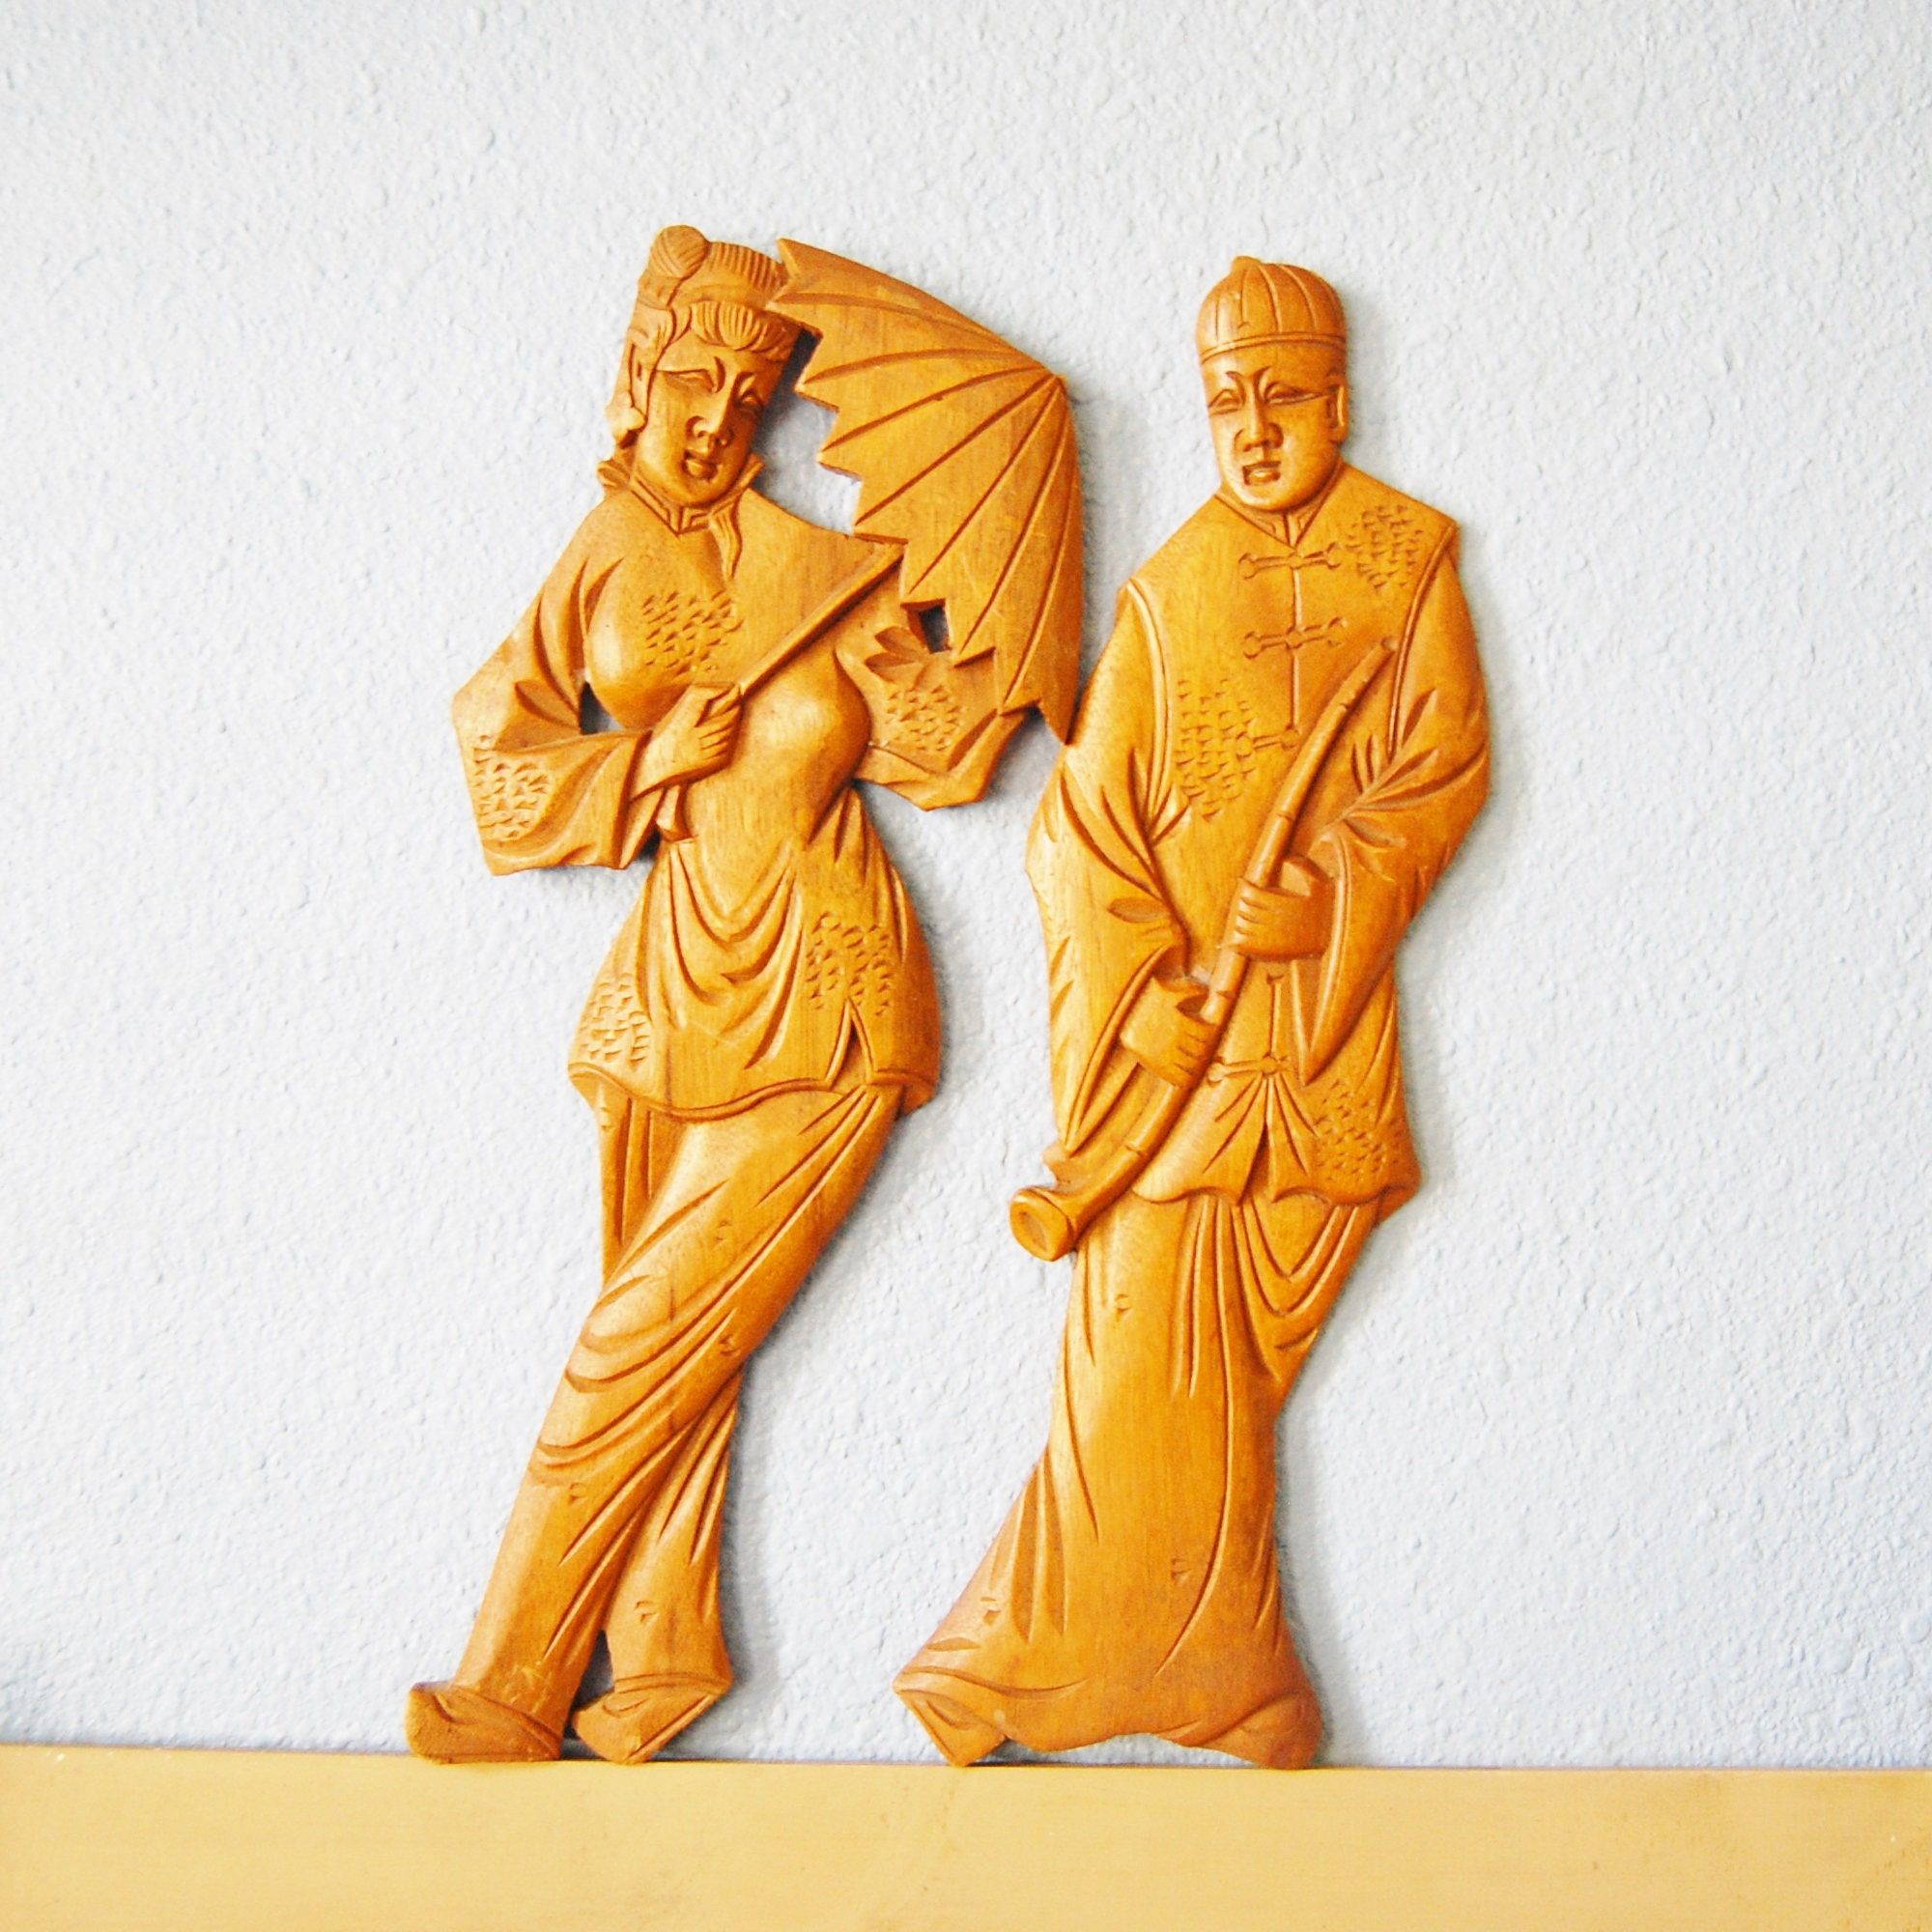 Vintage 1950s Carved Asian Wall Figures Man and Woman Teak